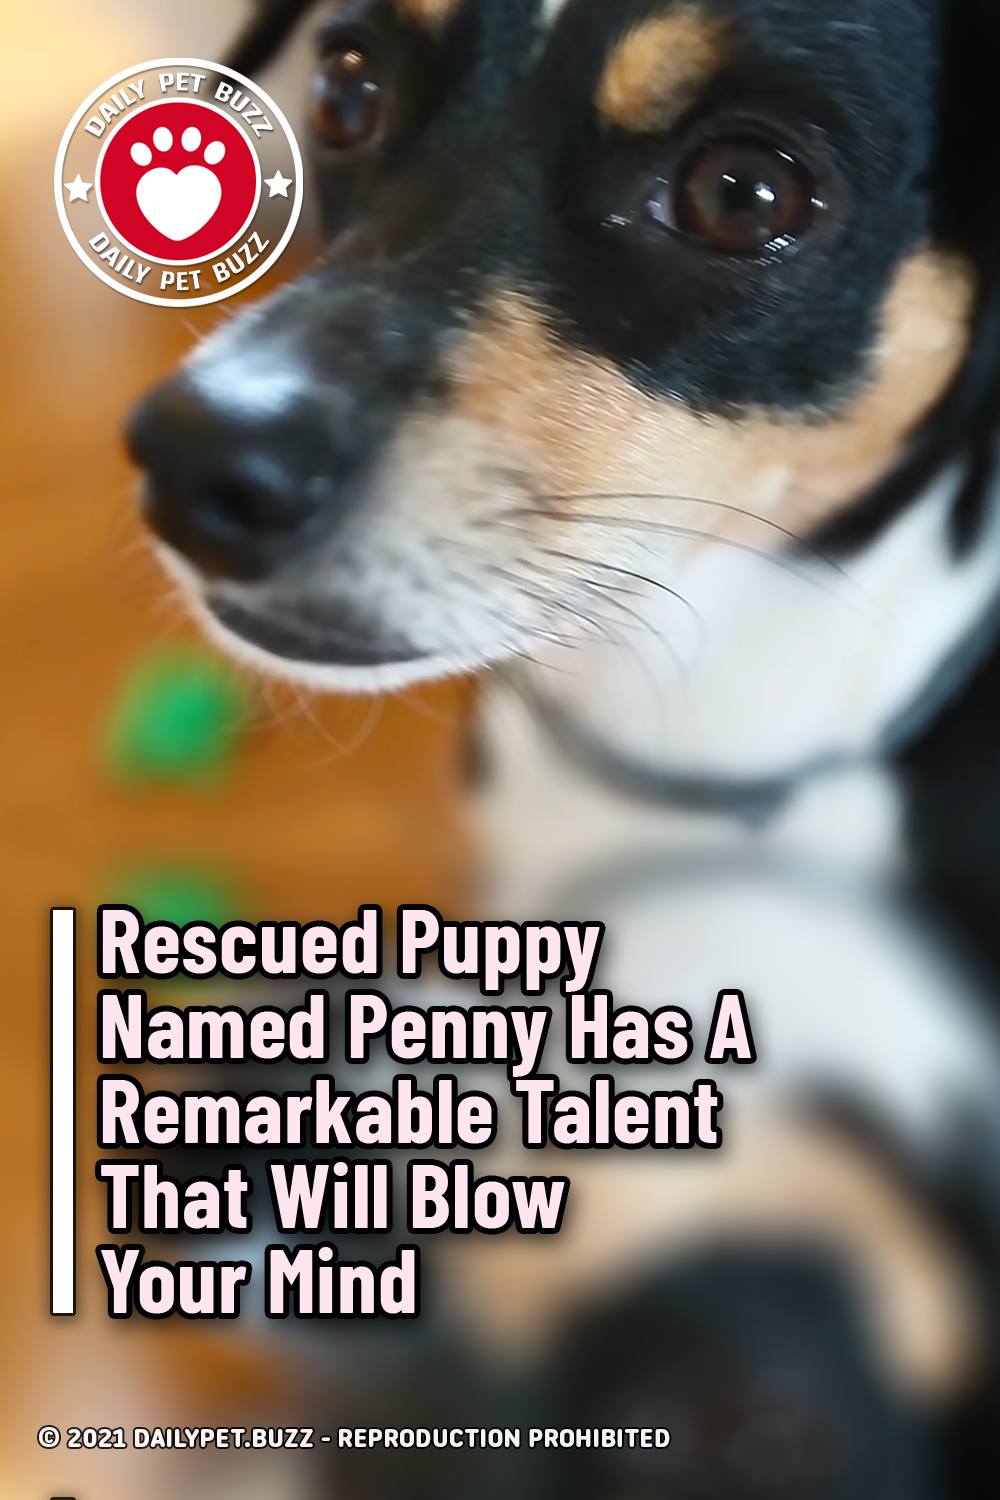 Rescued Puppy Named Penny Has A Remarkable Talent That Will Blow Your Mind